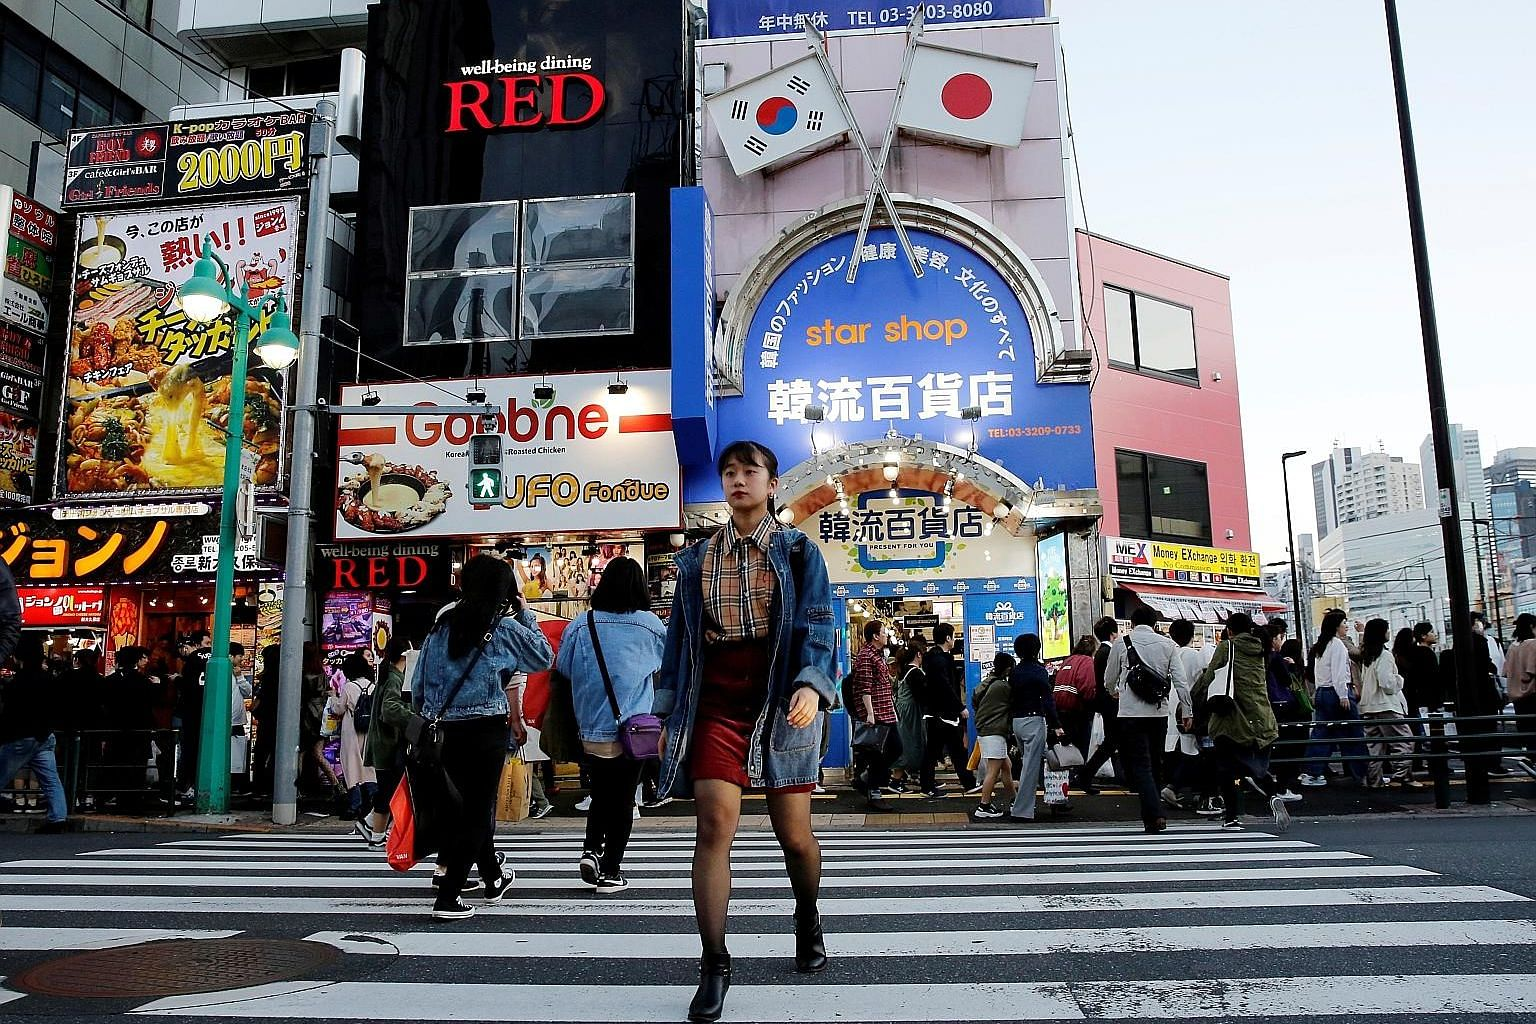 "Korean businesses in Tokyo's Shin-Okubo district, which is known as ""Korea town"", have reported barely a dent in takings since the latest dispute erupted, as South Korean culture remains wildly popular among the Japanese."